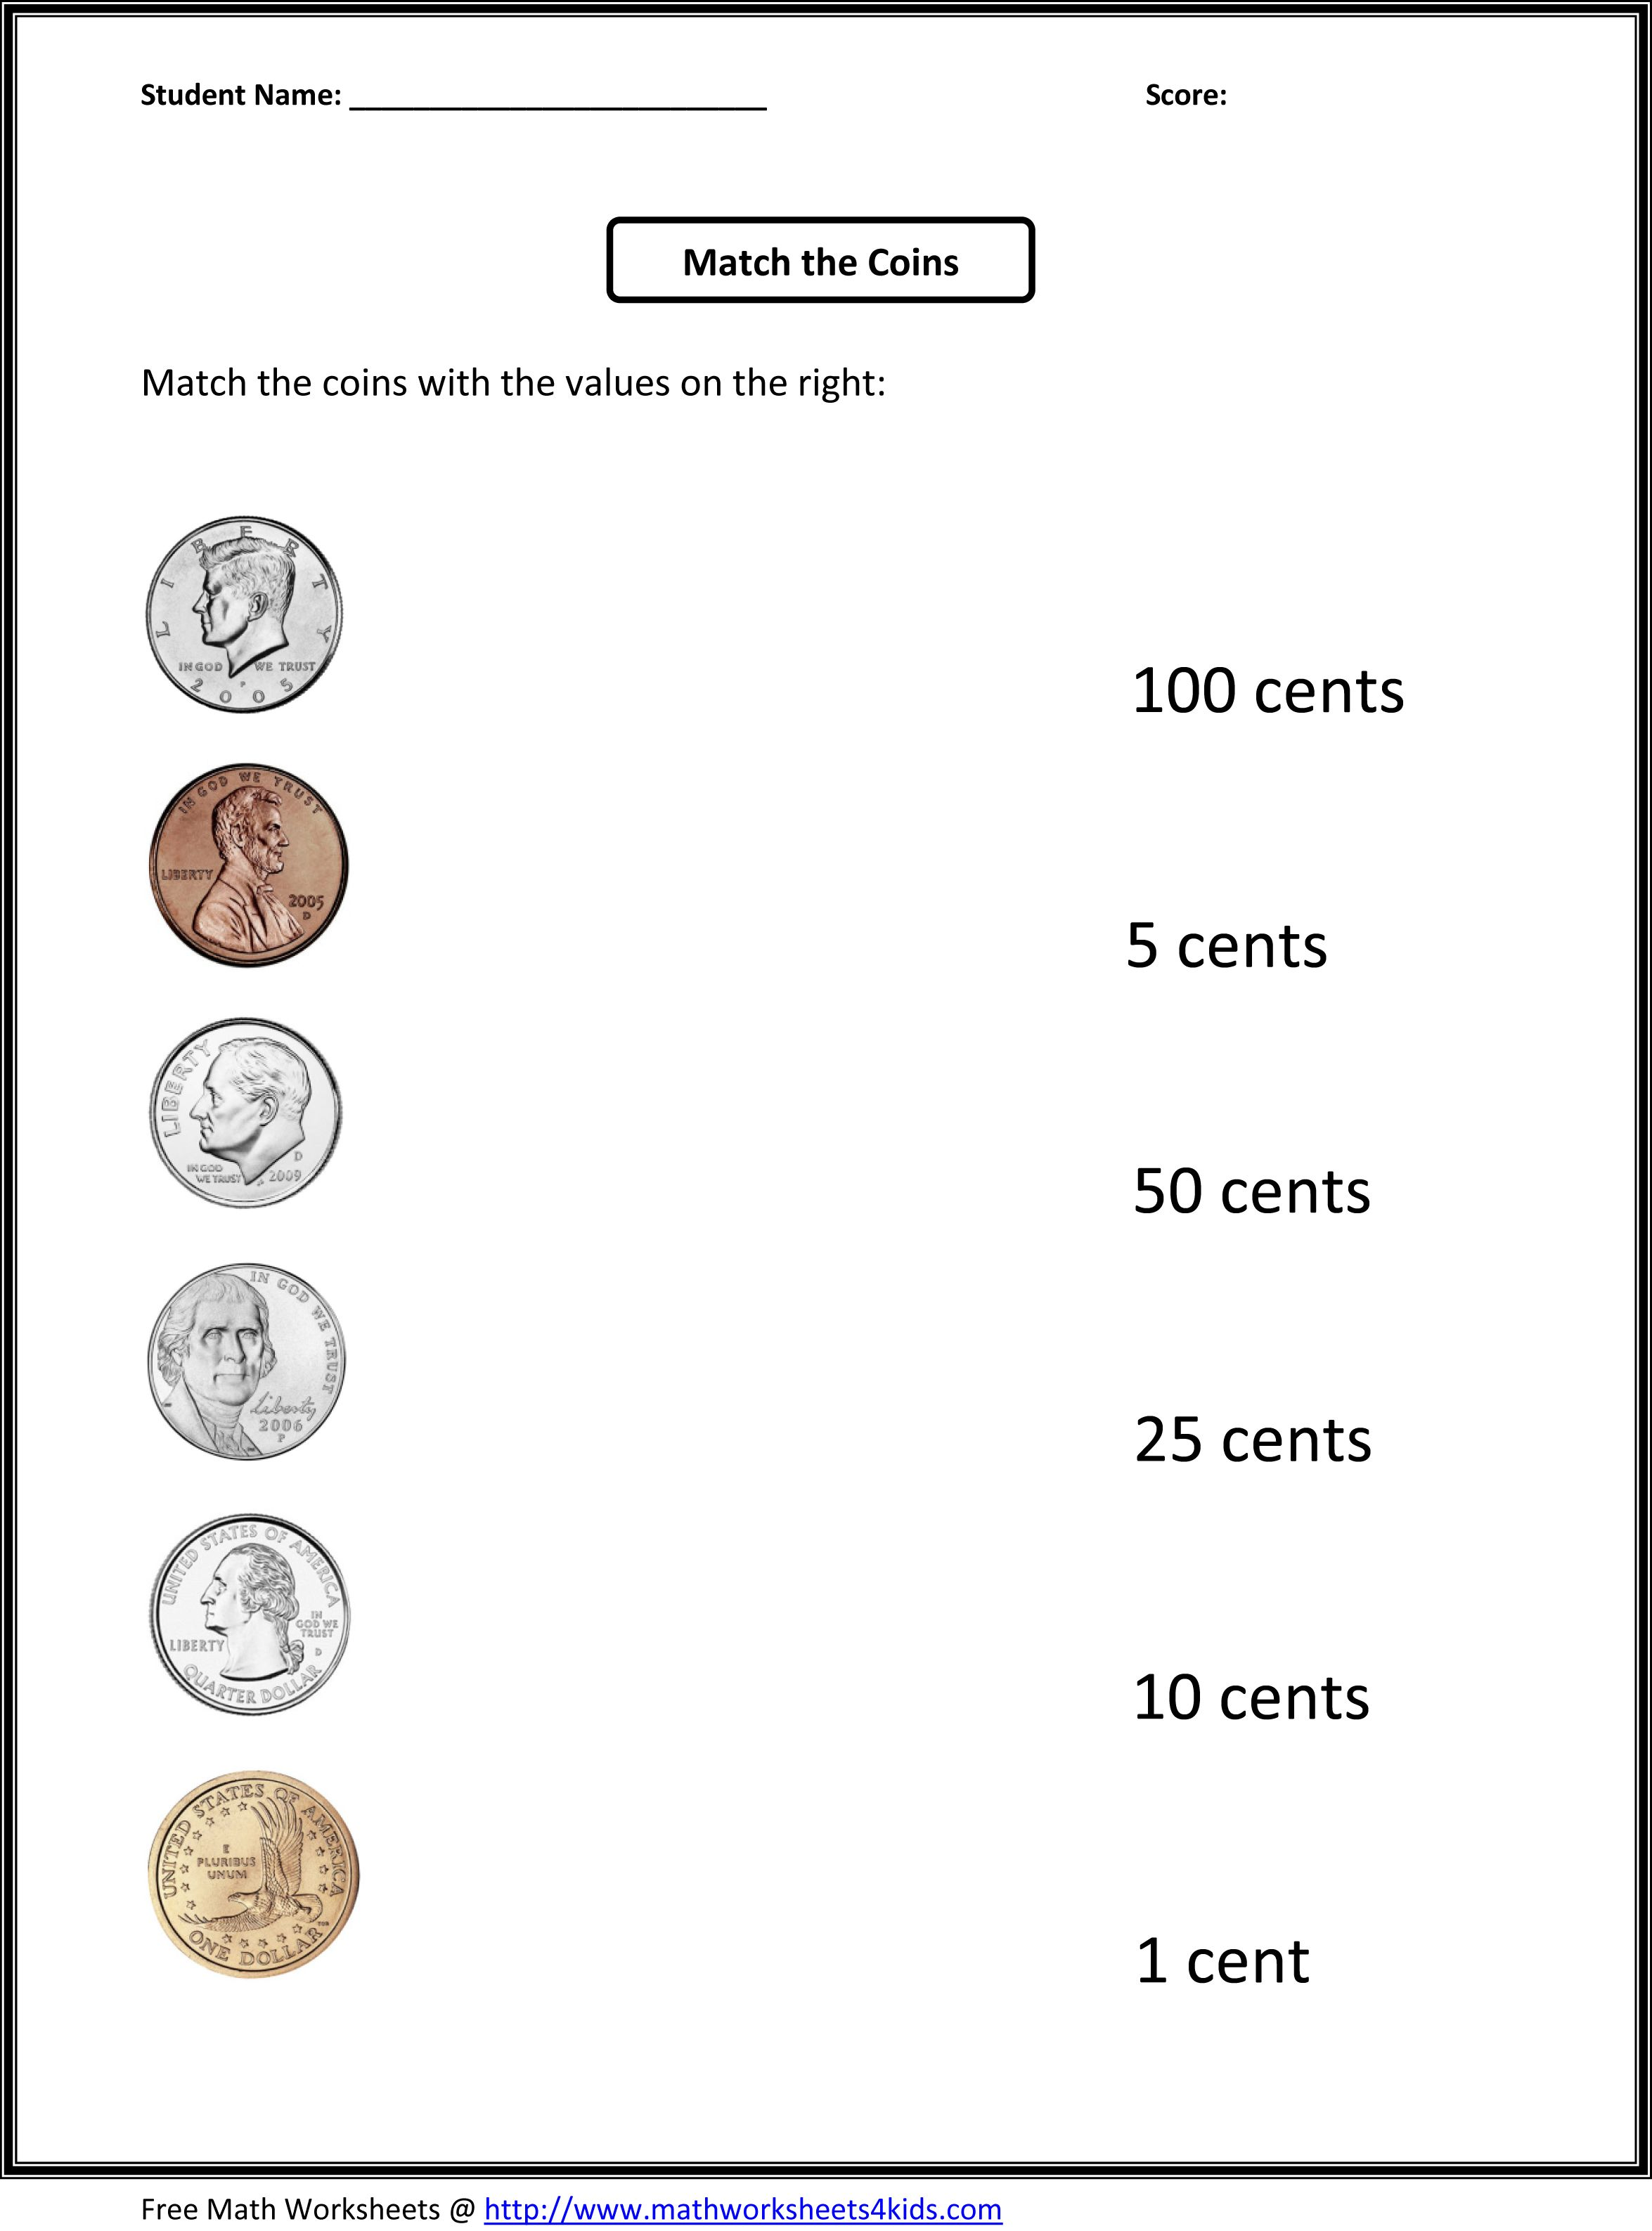 Worksheets Coin Value Worksheets free 1st grade worksheets match the coins and its values values